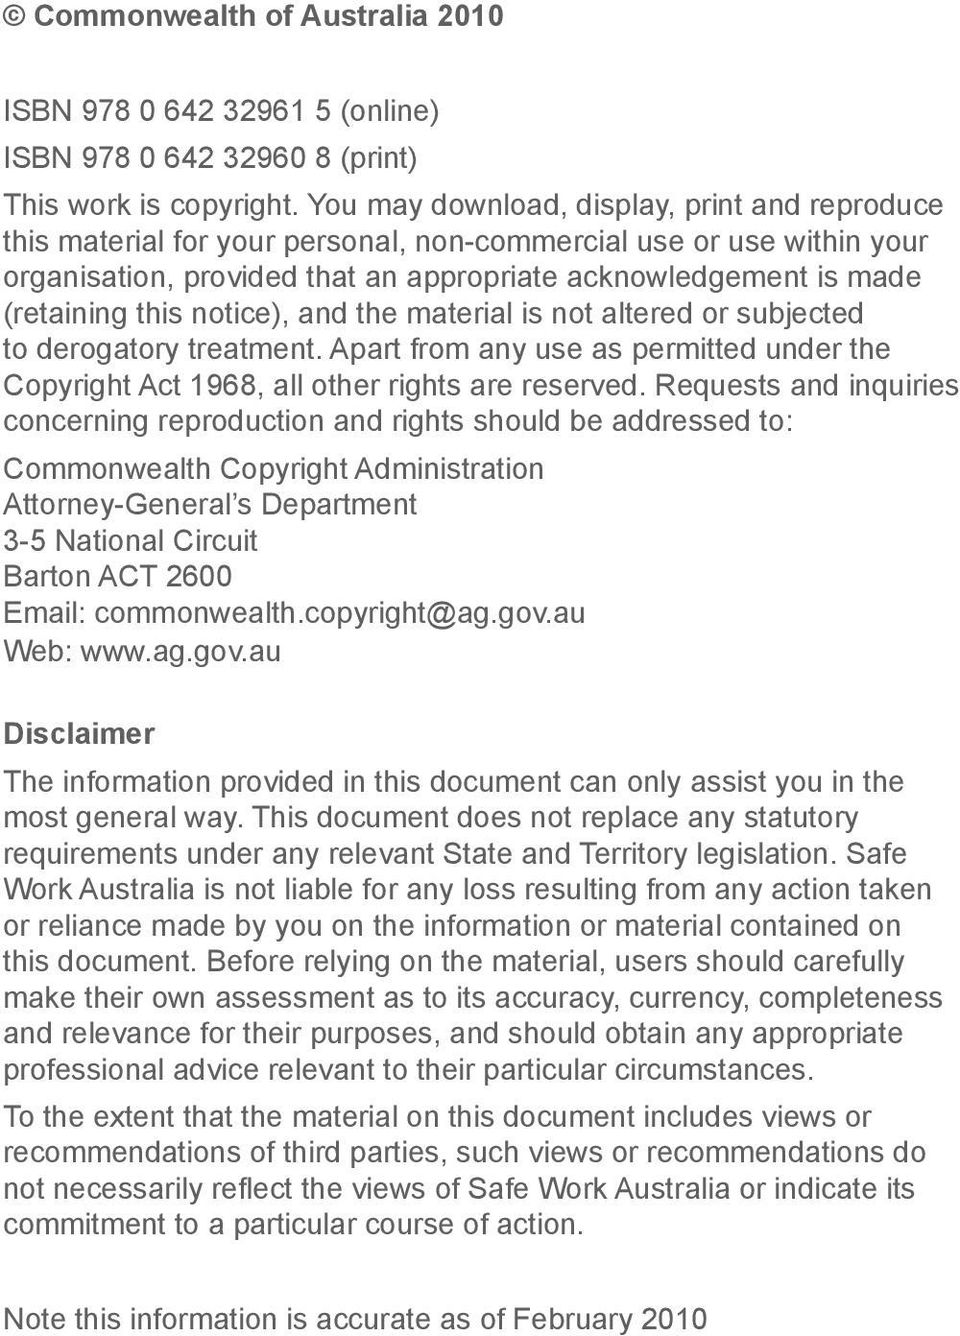 this notice), and the material is not altered or subjected to derogatory treatment. Apart from any use as permitted under the Copyright Act 1968, all other rights are reserved.